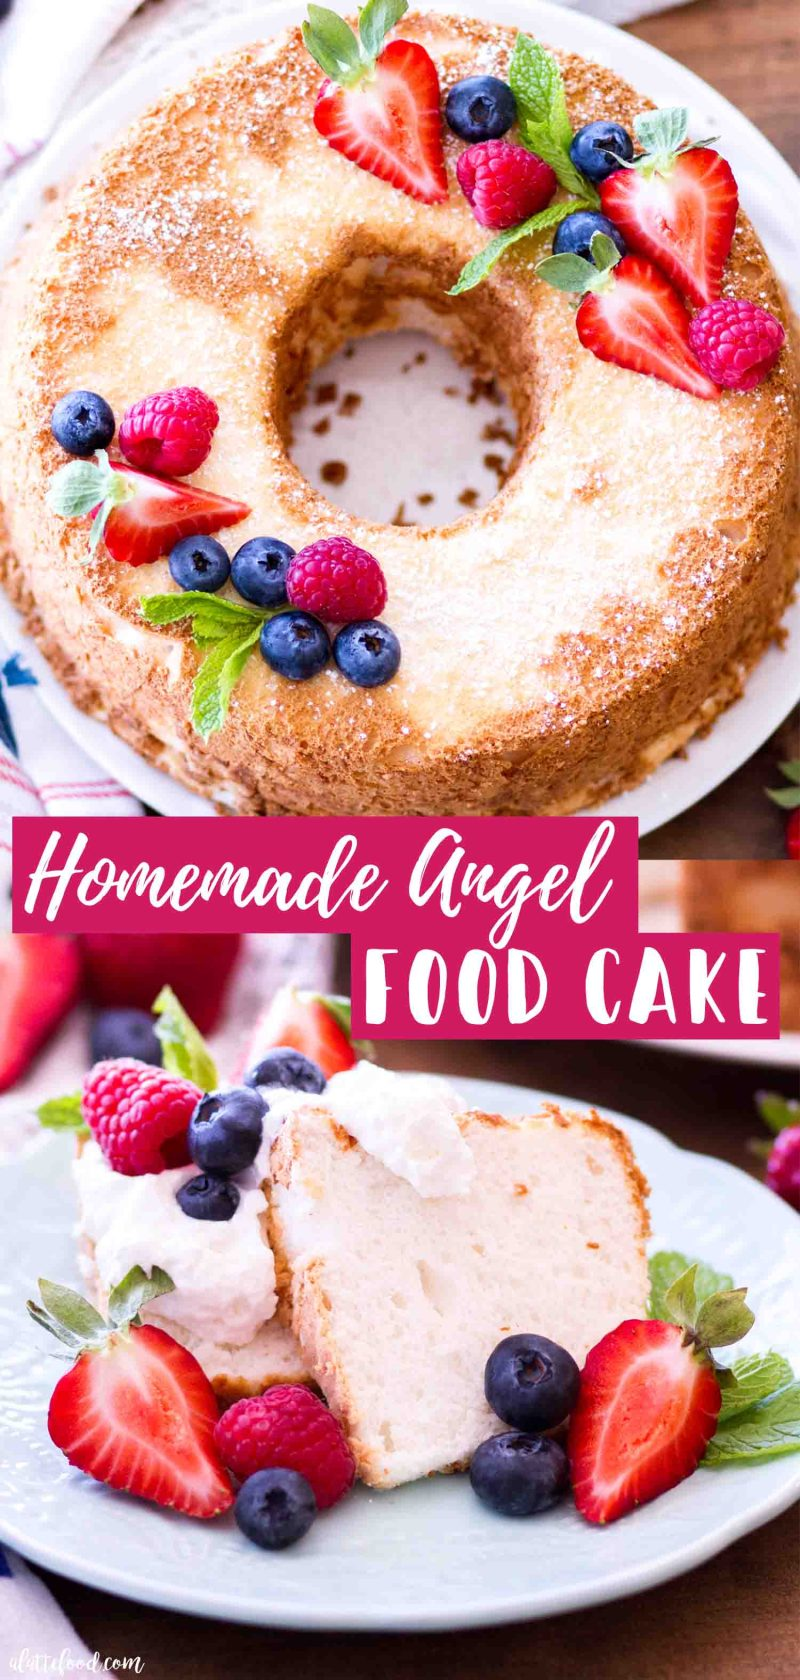 Homemade Angel Food Cake recipe with all purpose flour and topped with fresh berries, powdered sugar and whipped cream.